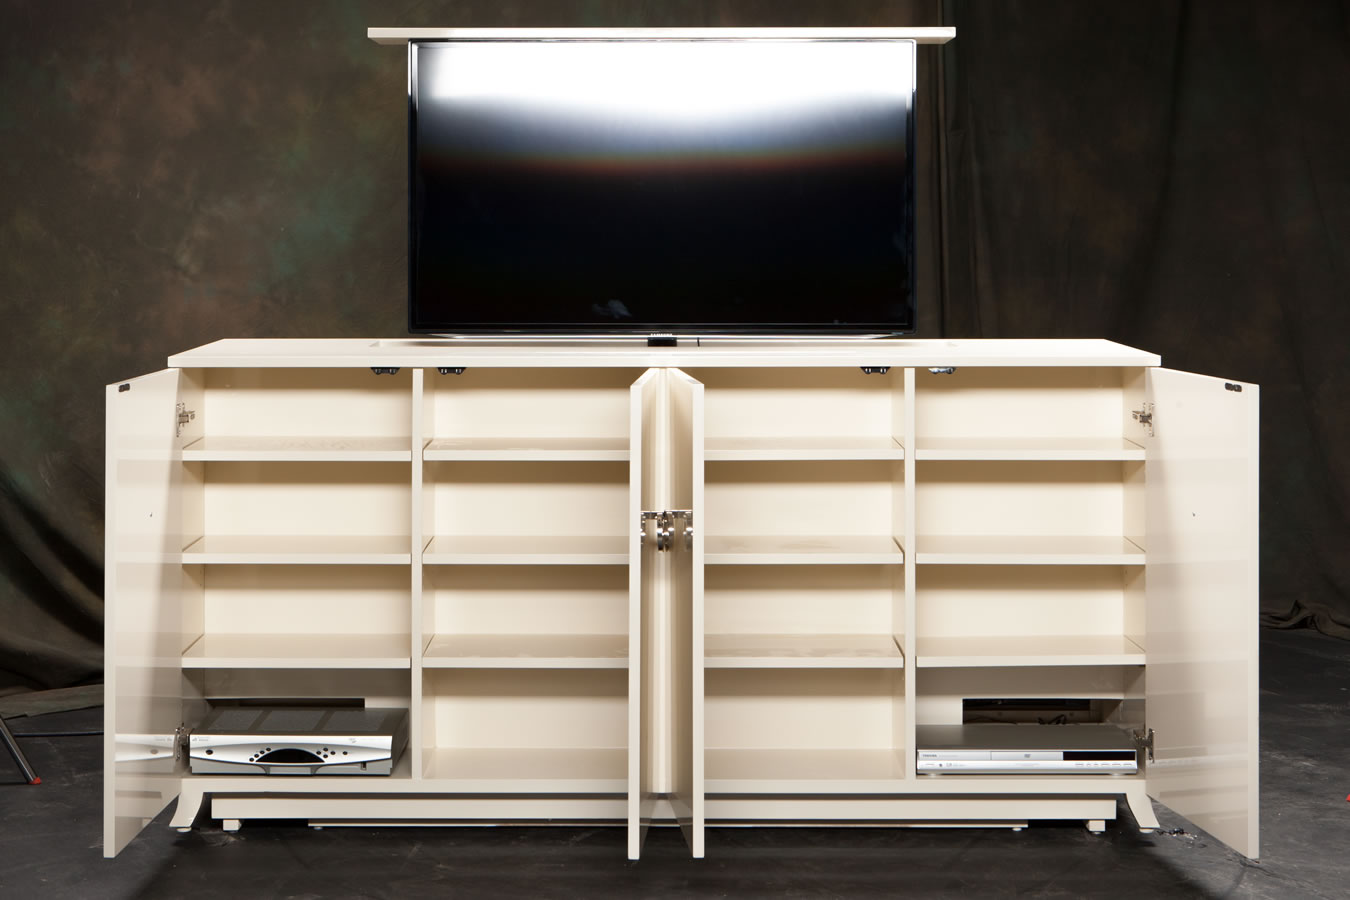 Furniture without tv lifts by cabinet tronix for Designer furniture new york